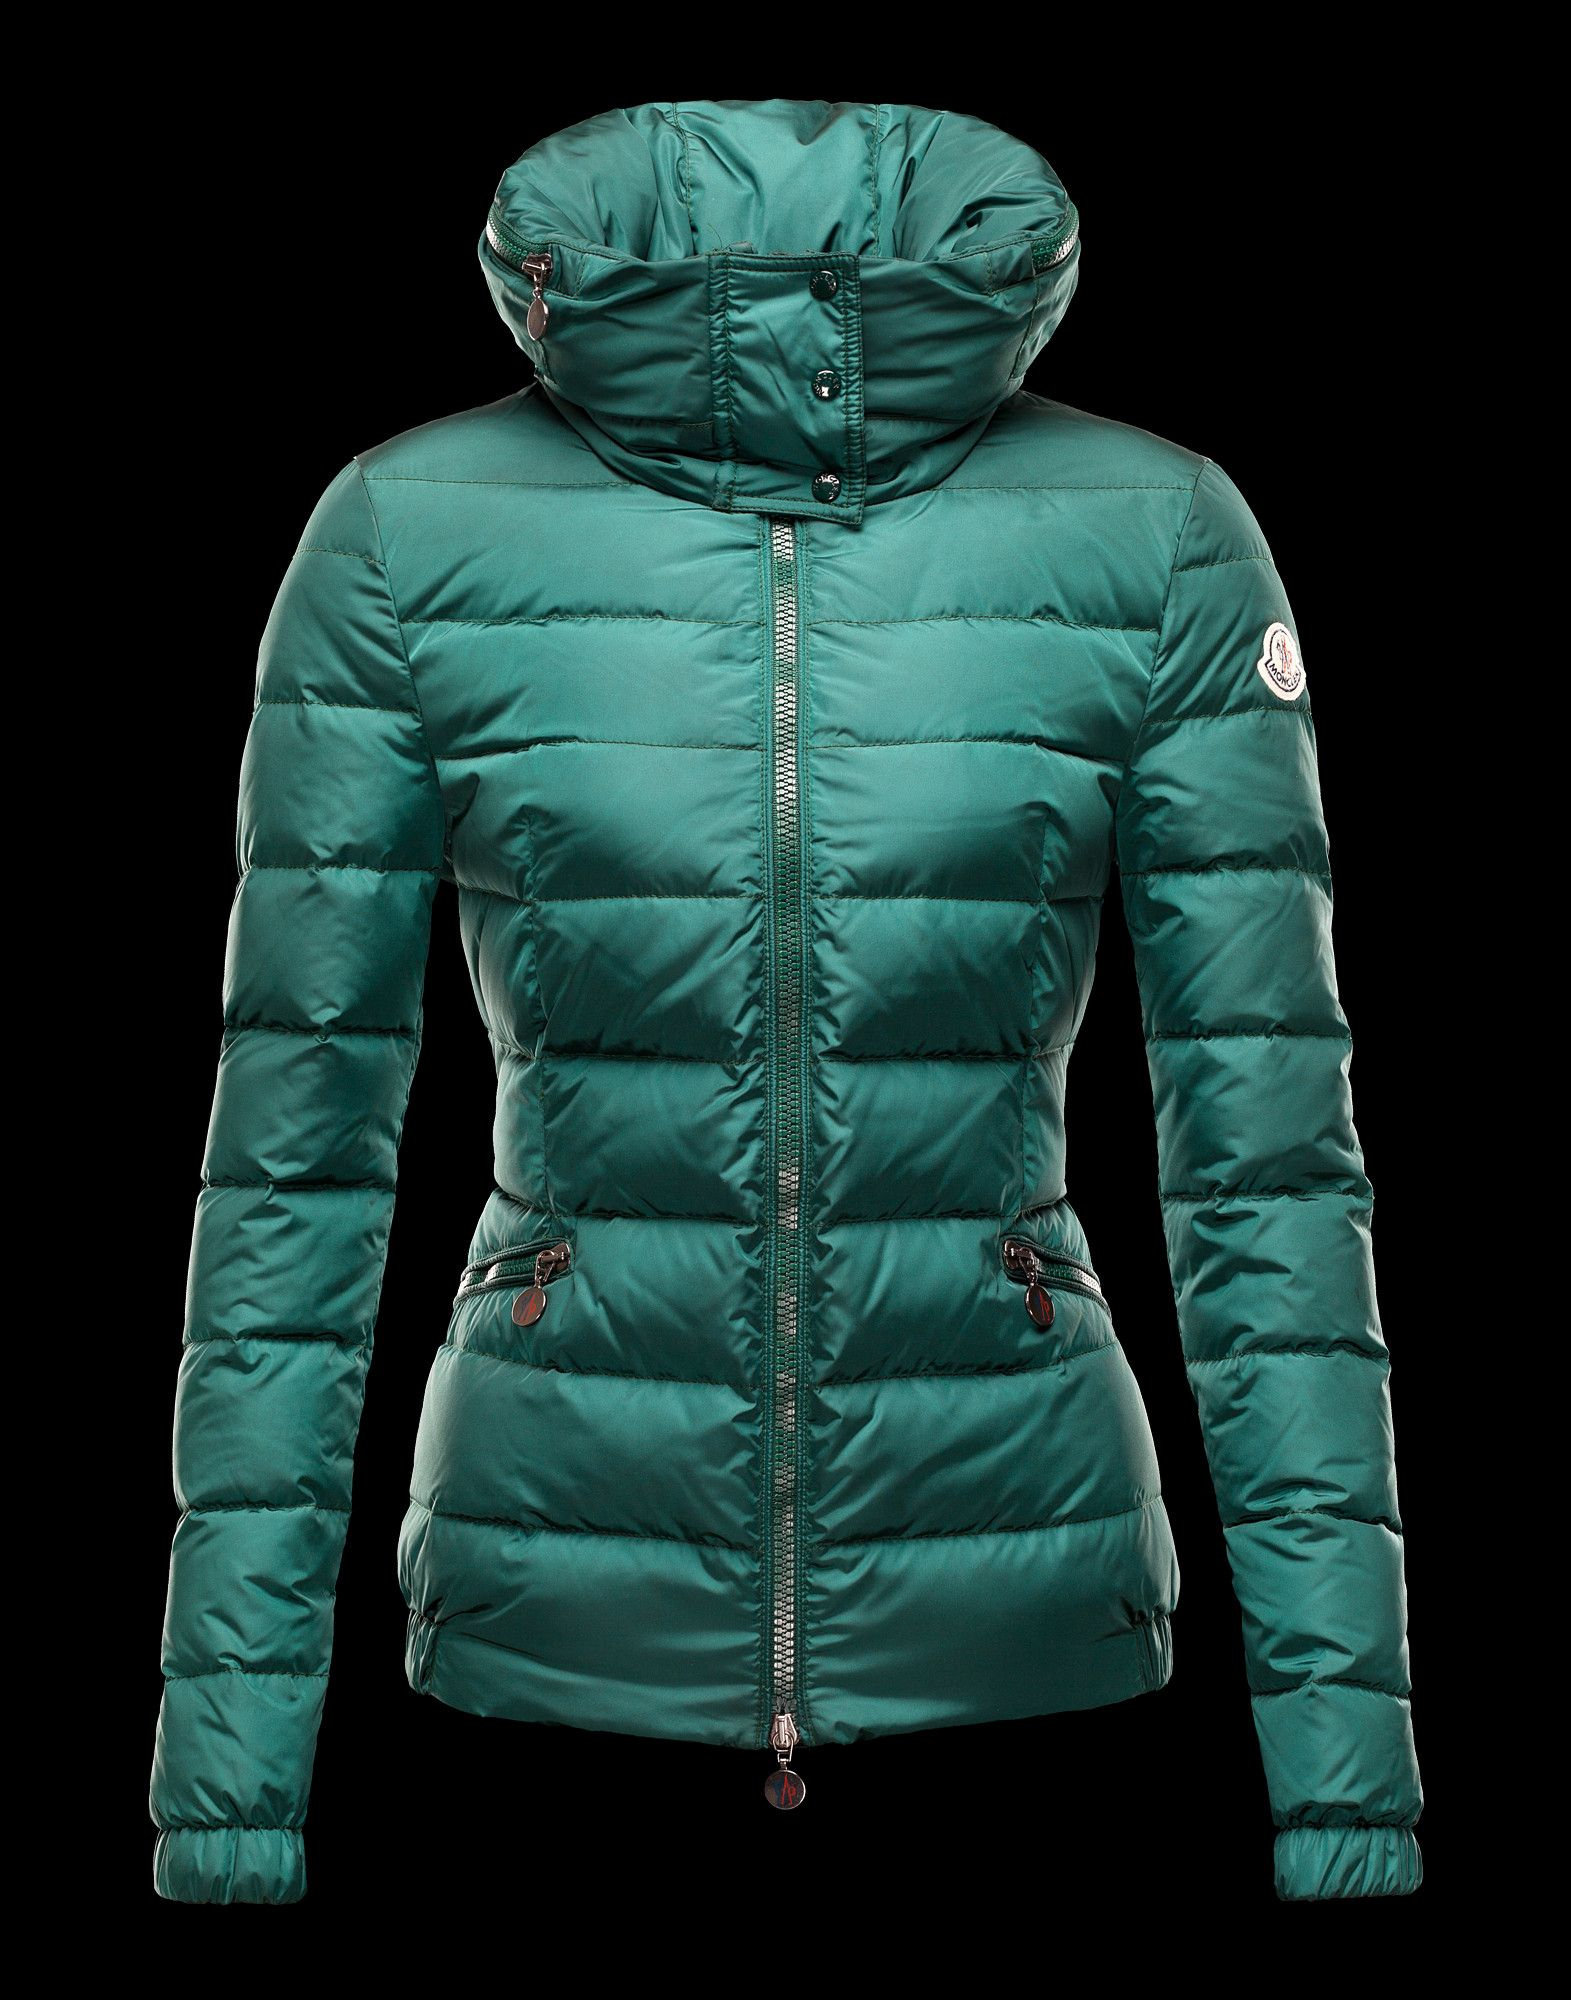 MONCLER Women - Fall Winter 12 - OUTERWEAR - Jacket - SANGLIER   Ski ... ae44fdaa696